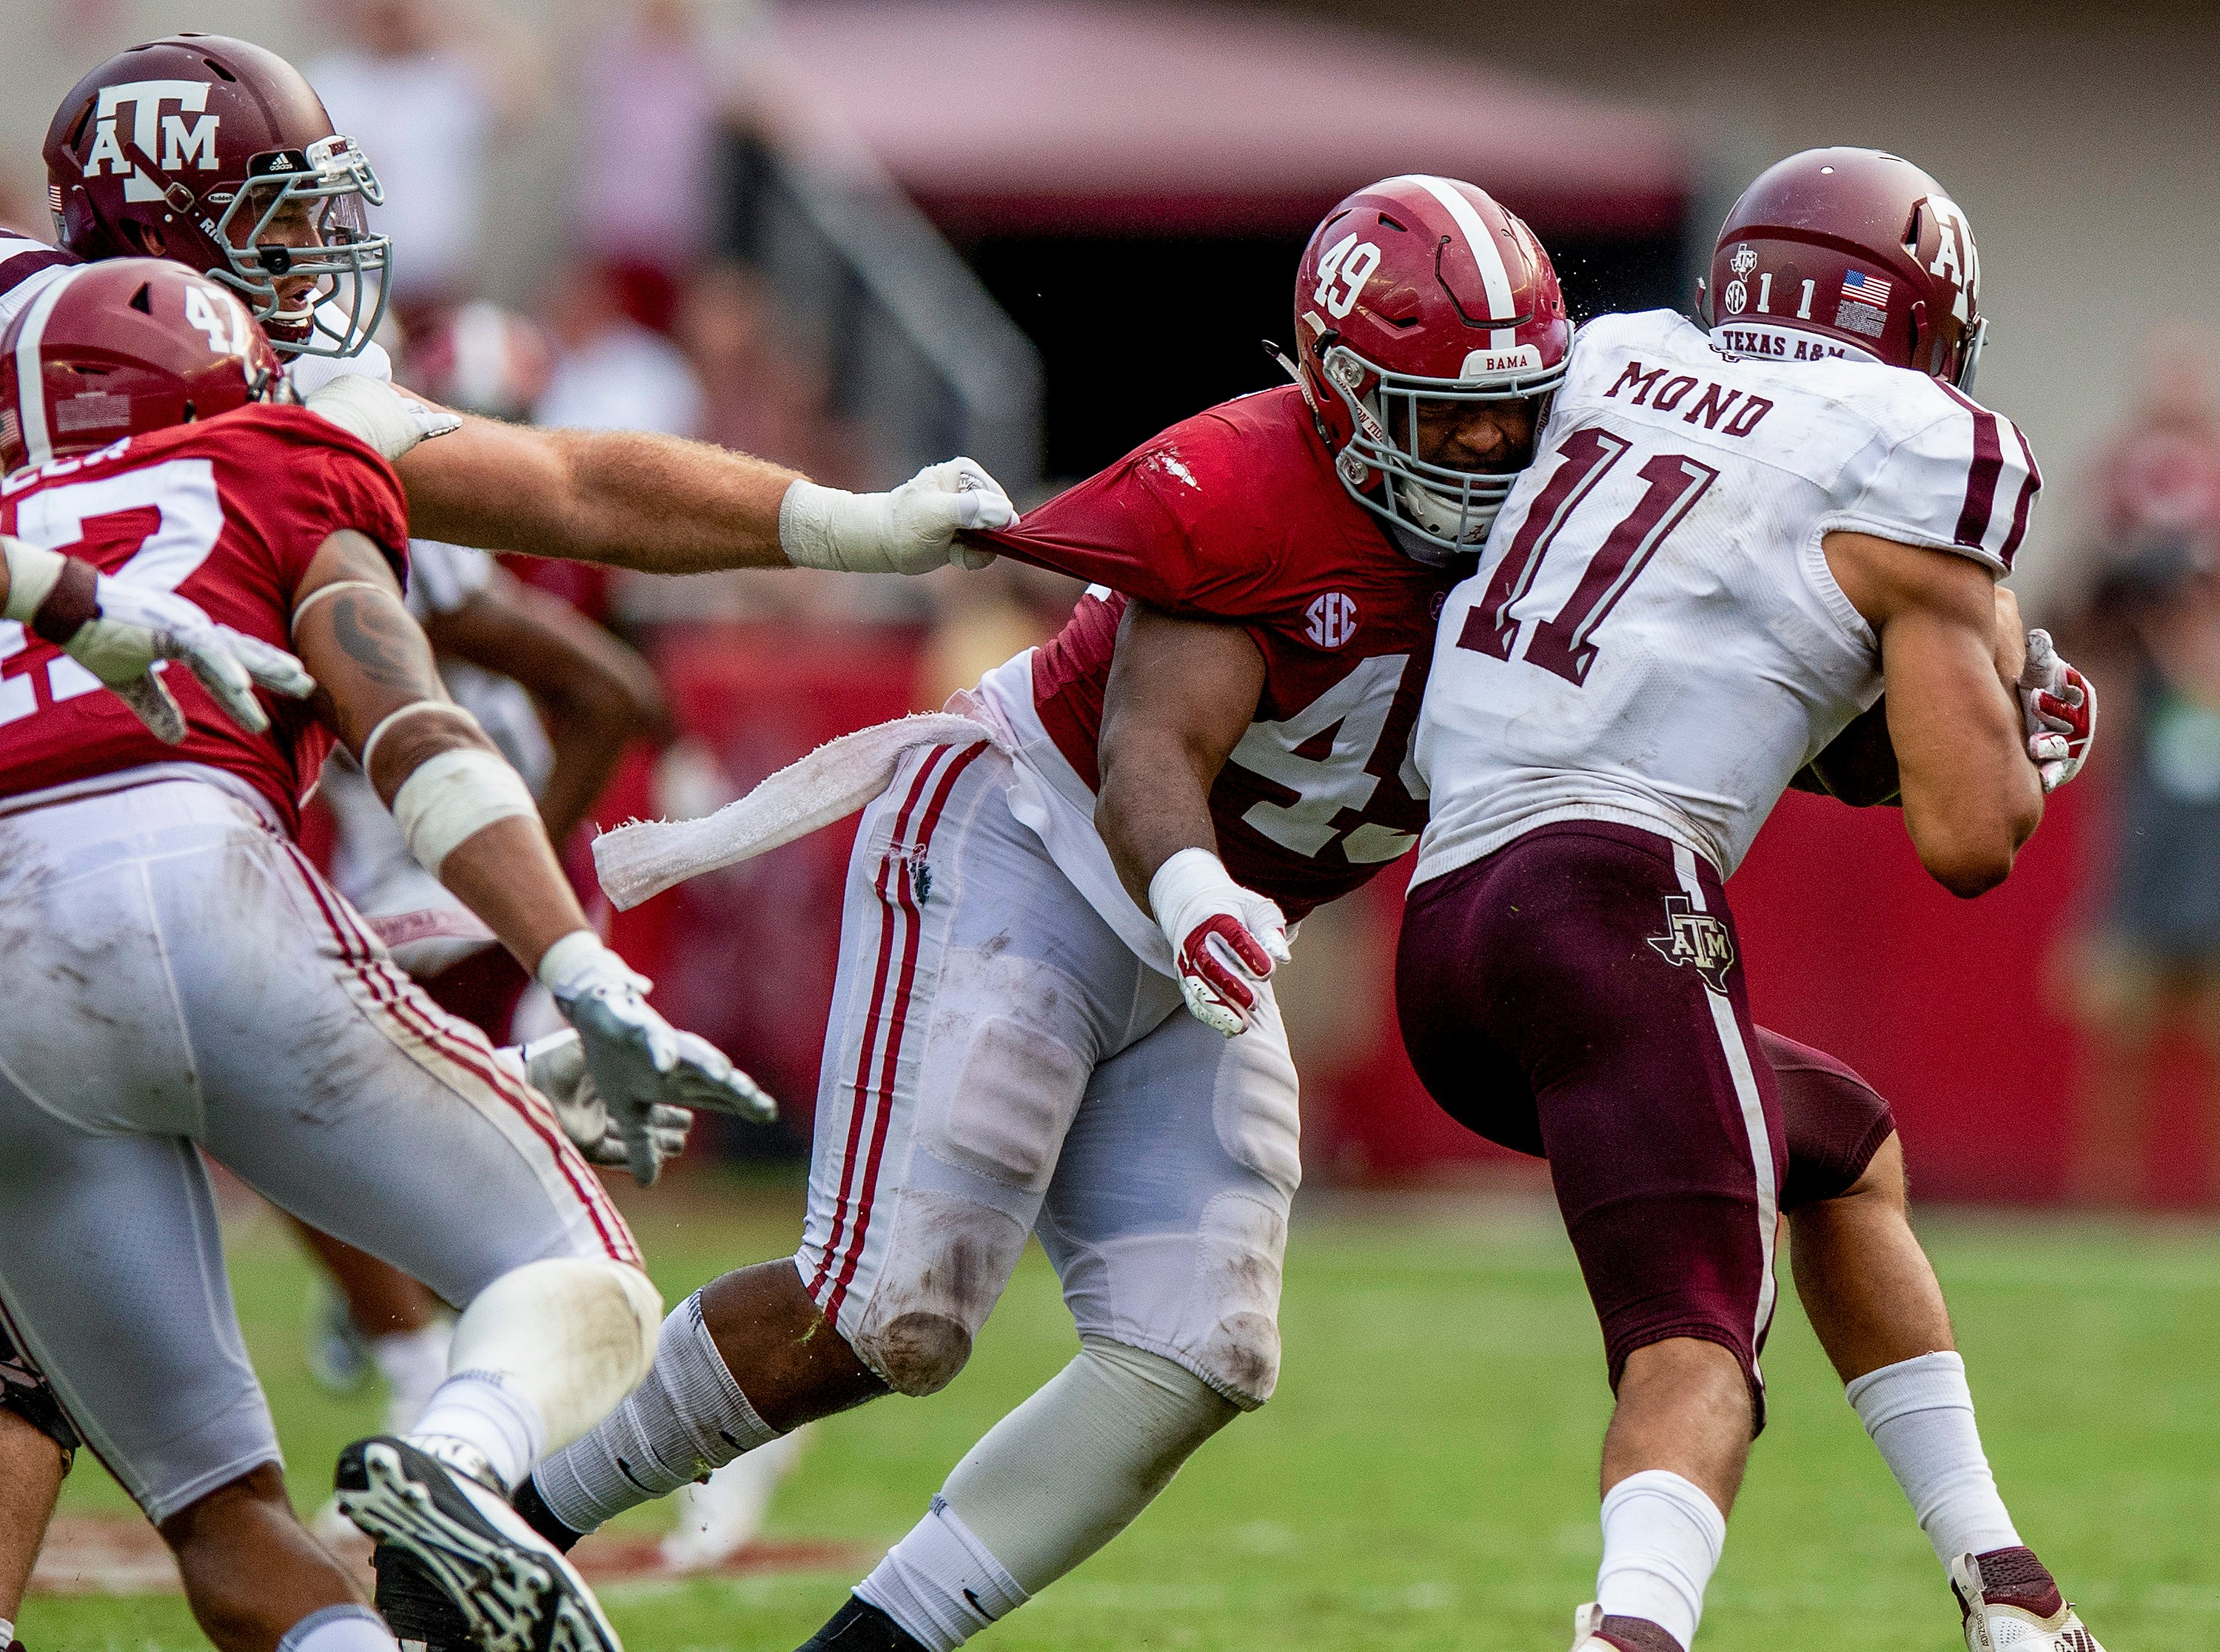 Alabama defensive lineman Isaiah Buggs (49) sacks Texas A&M quarterback Kellen Mond (11) in second half action in Tuscaloosa, Ala., on Saturday September 22, 2018.